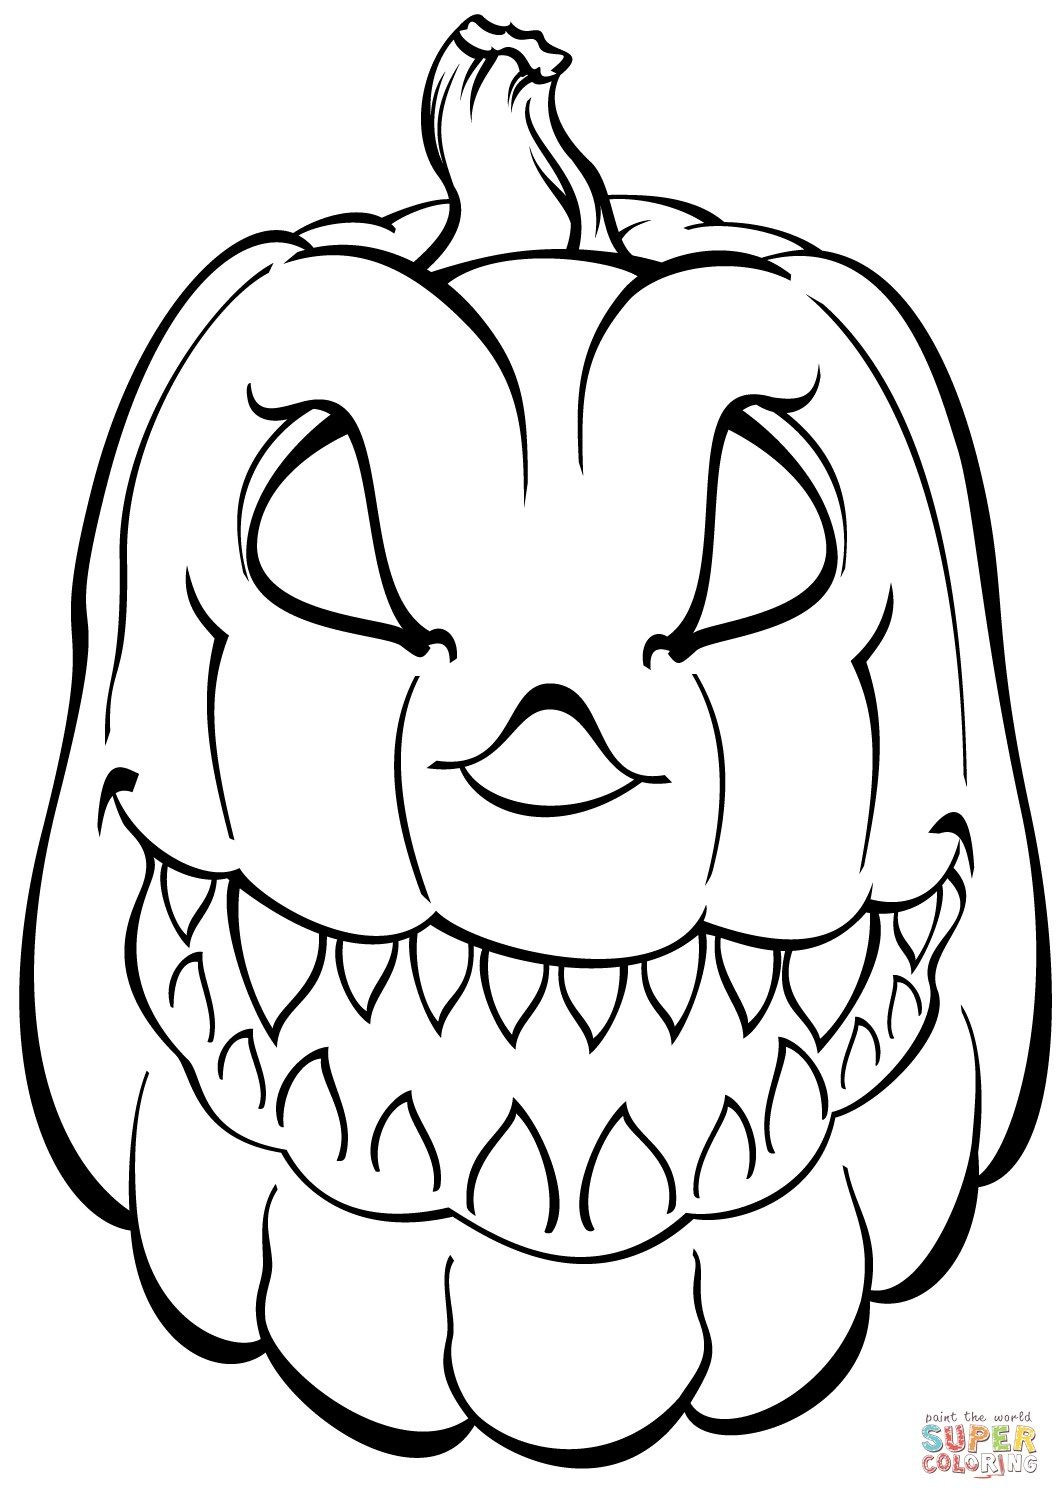 22 Creative Photo Of Pumpkin Coloring Pages Davemelillo Com Pumpkin Coloring Pages Halloween Coloring Halloween Coloring Pages Printable